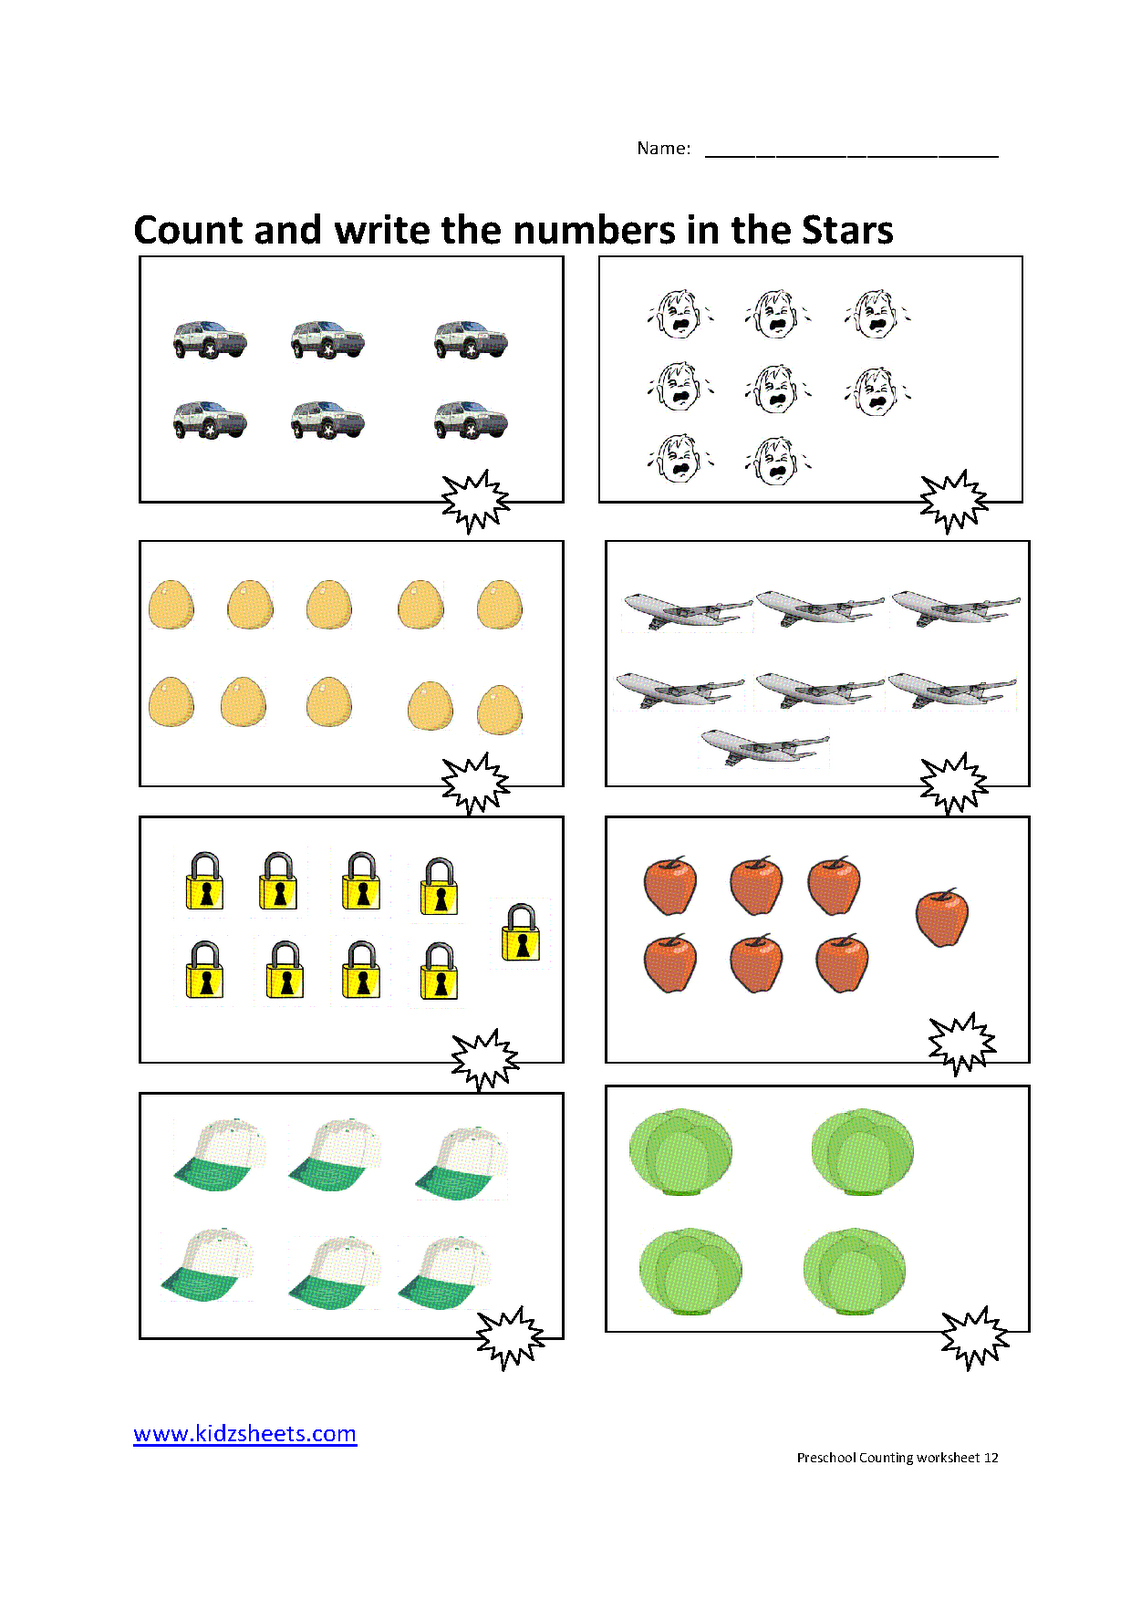 Math Worksheets For Kids – With Primary Maths Free Printable Also | Printable Winter Math Worksheets